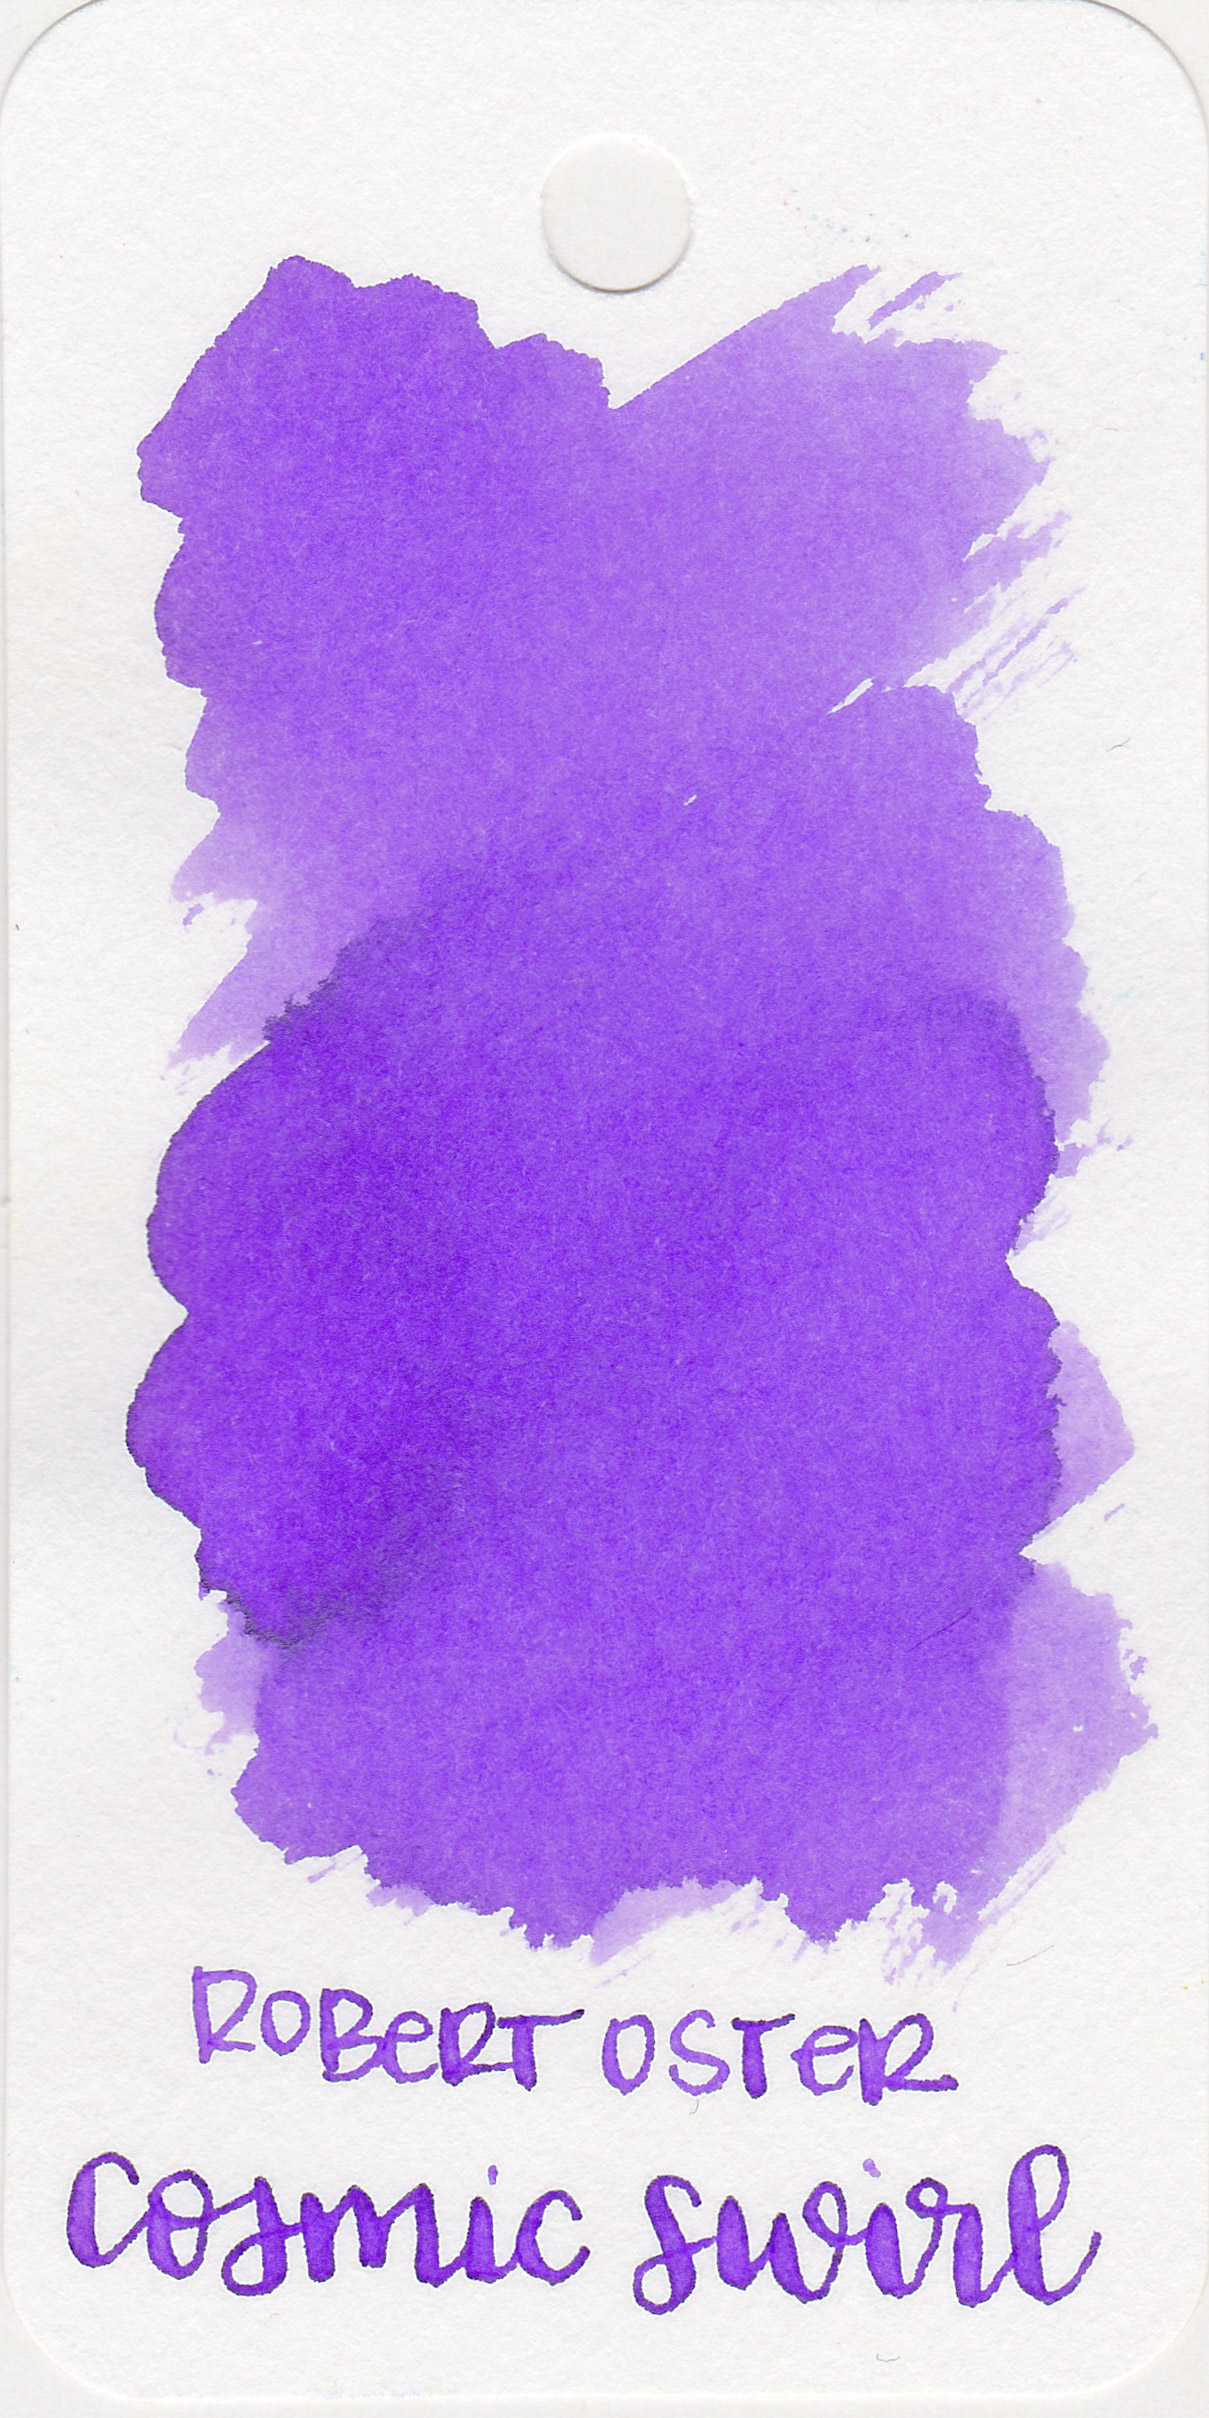 The color: - Cosmic Swirl is a light, gorgeous purple with a slight warm tone on the Col-o-ring paper.